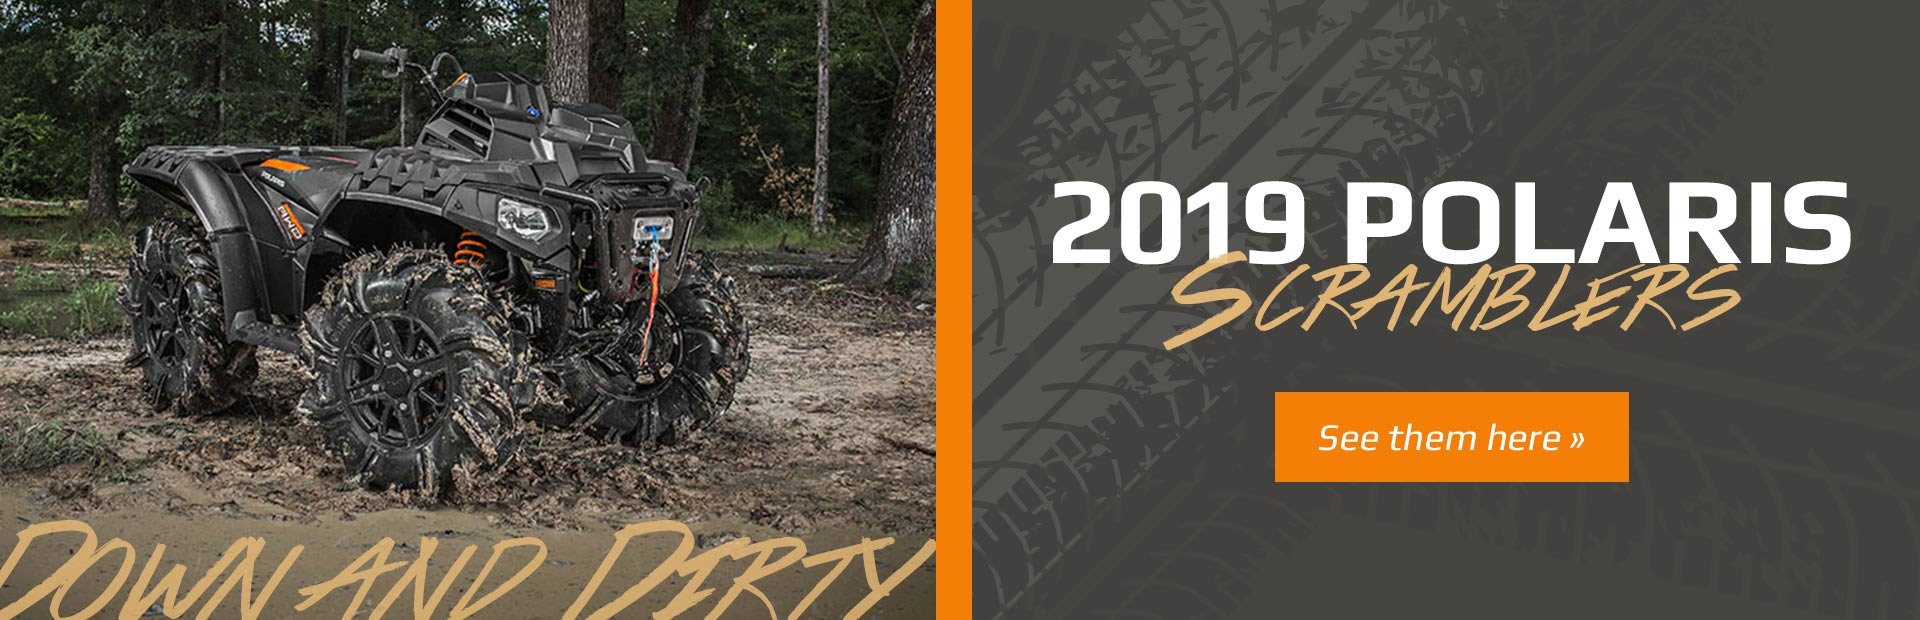 2019 Polaris Scramblers: Click here to view the models.